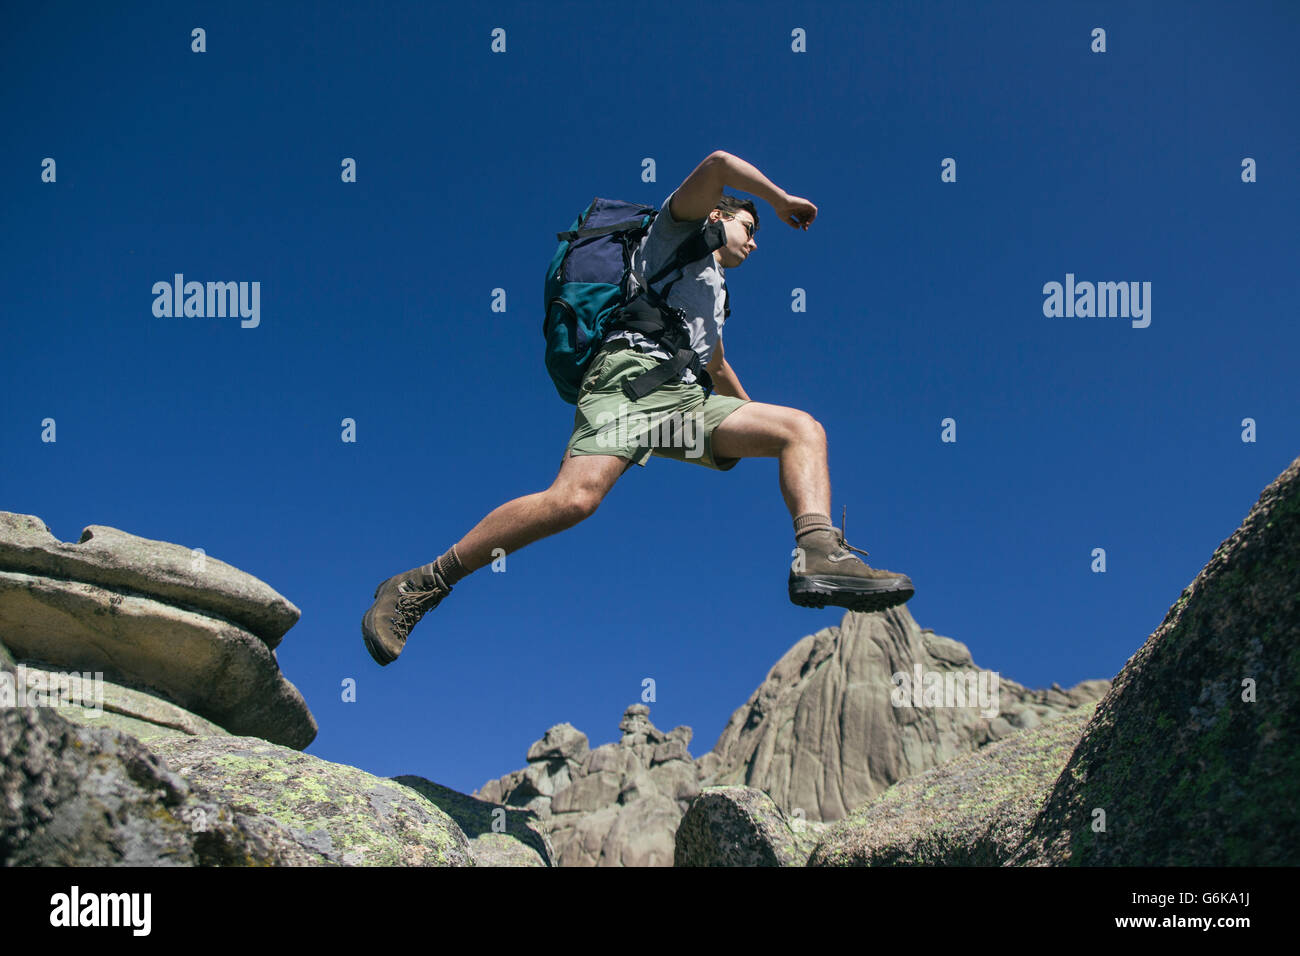 Spain, hiker with backpack jumping on the rocks in La Pedriza Stock Photo